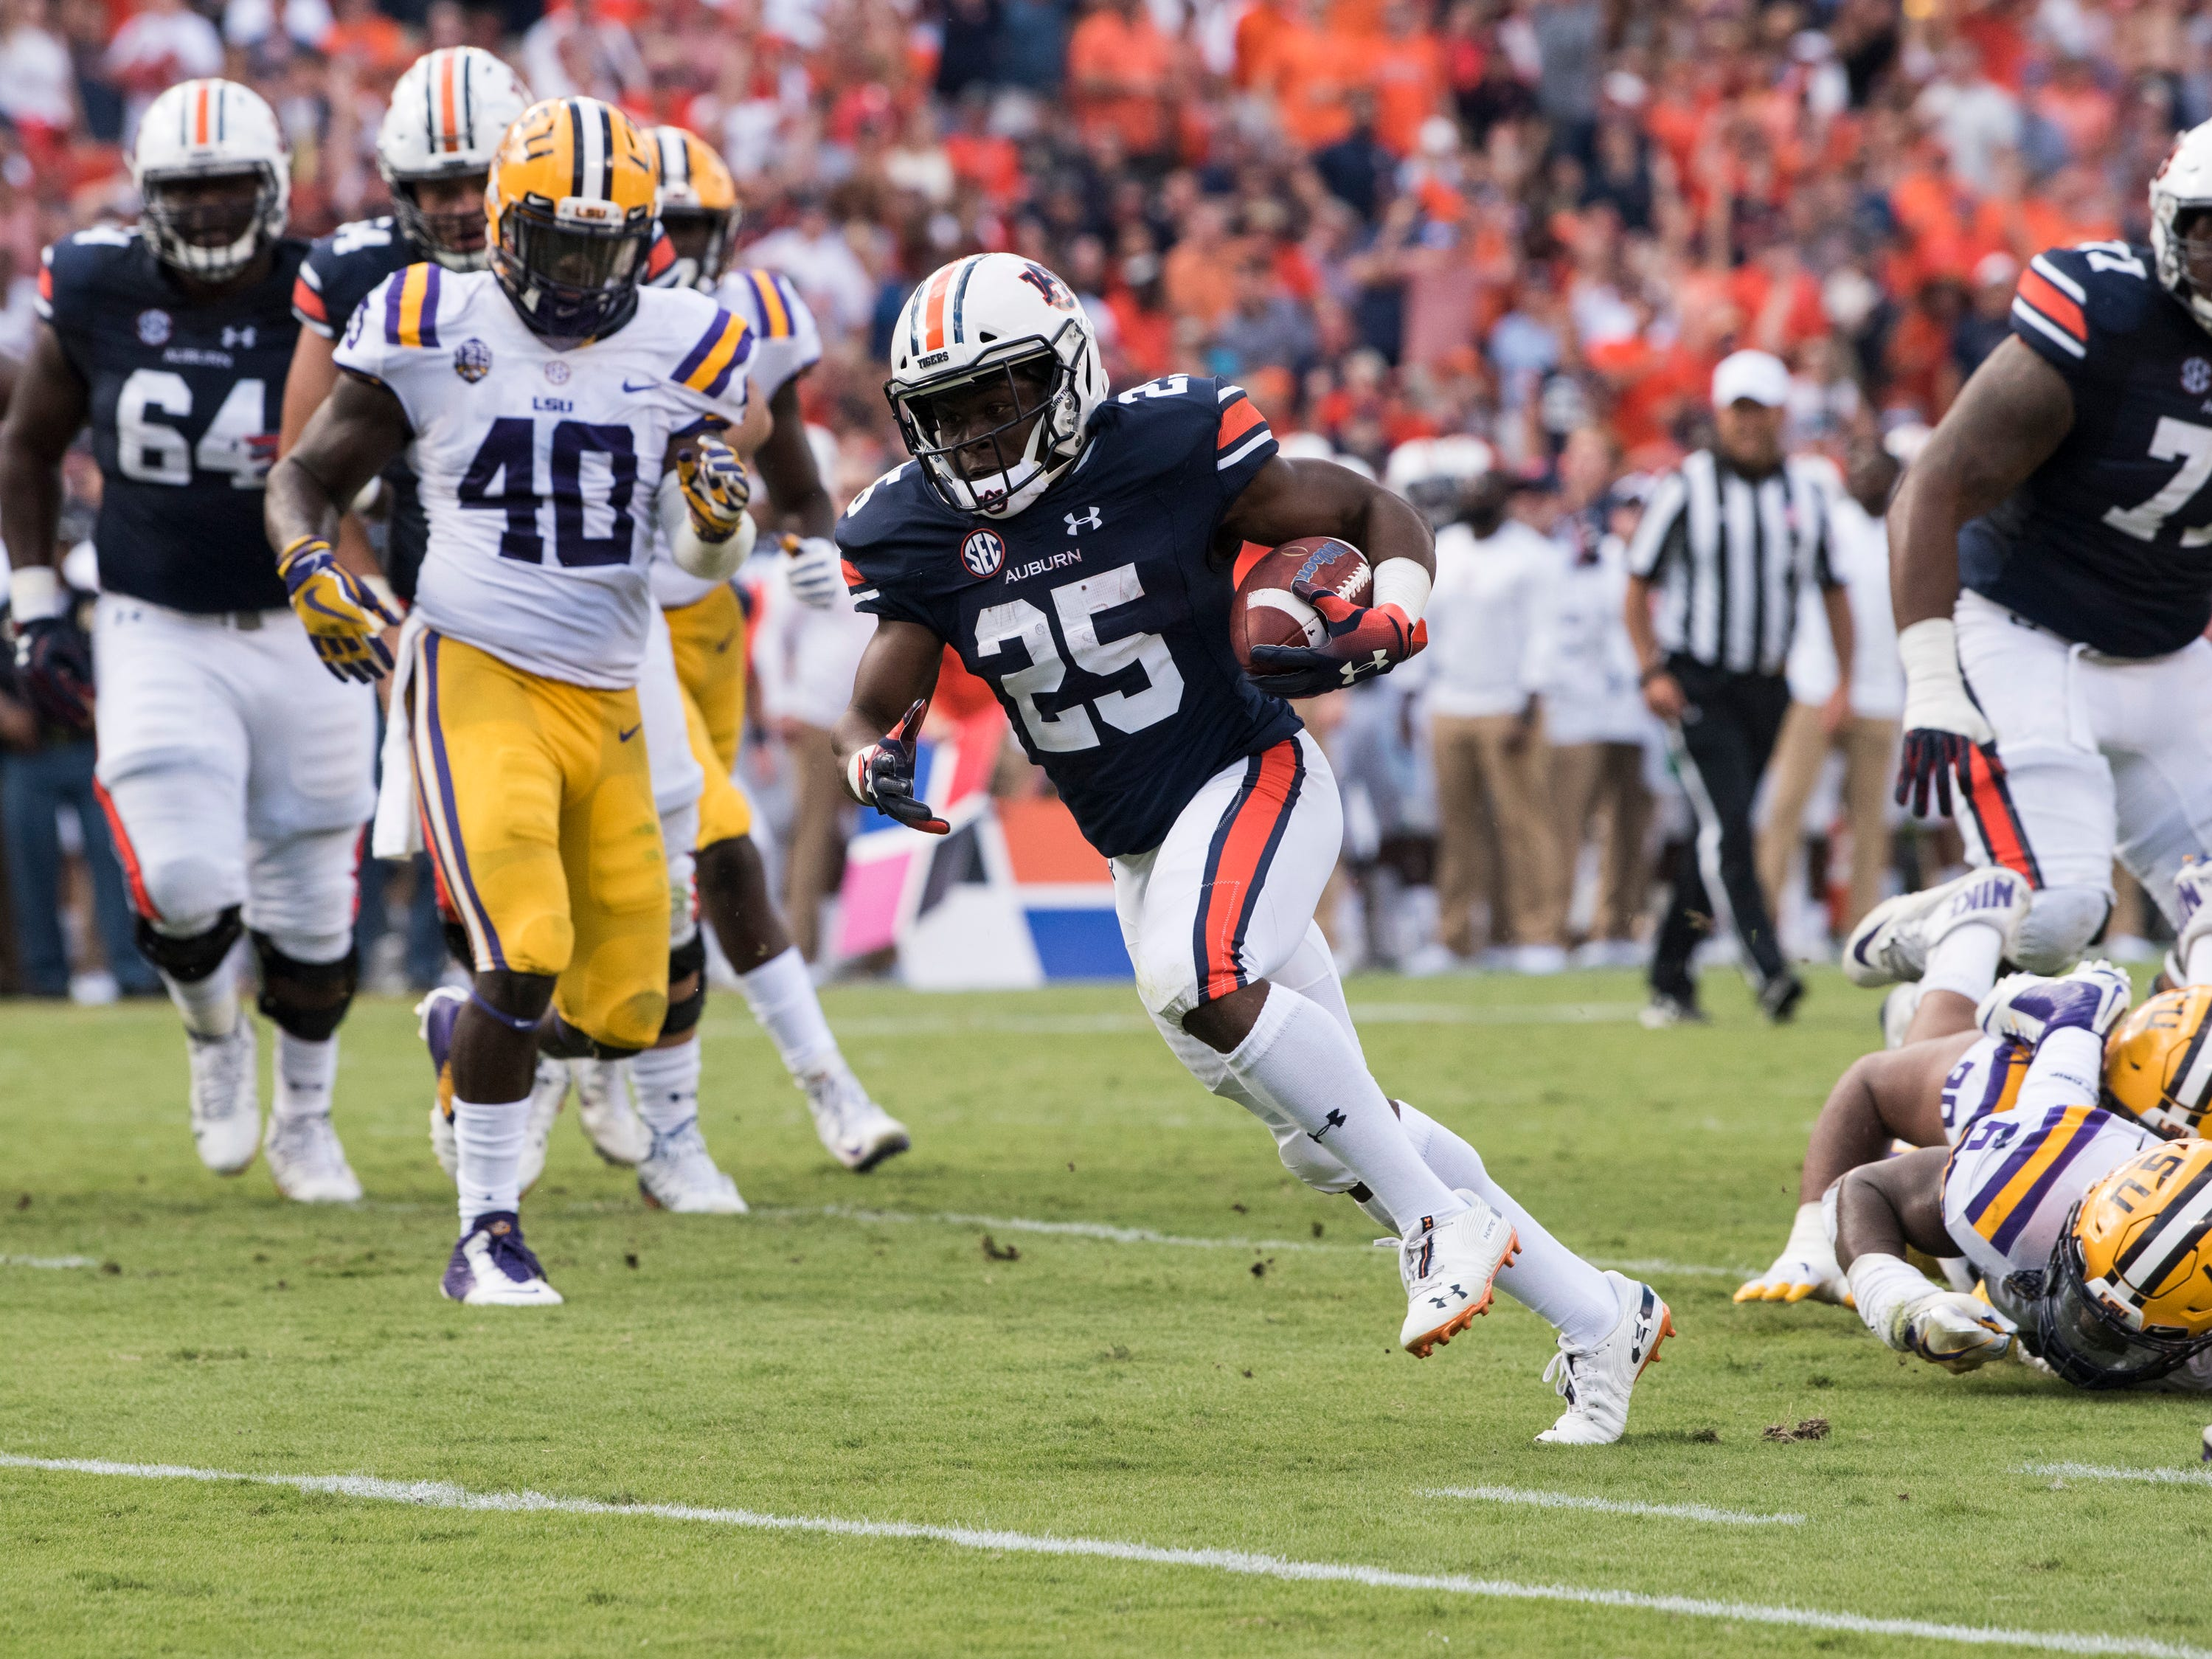 Auburn's Shaun Shivers (25) sheds defenders as he runs into the end zone for a touchdown against LSU at Jordan-Hare Stadium in Auburn, Ala., on Saturday, Sept. 15, 2018. Auburn leads LSU 14-10 at halftime.